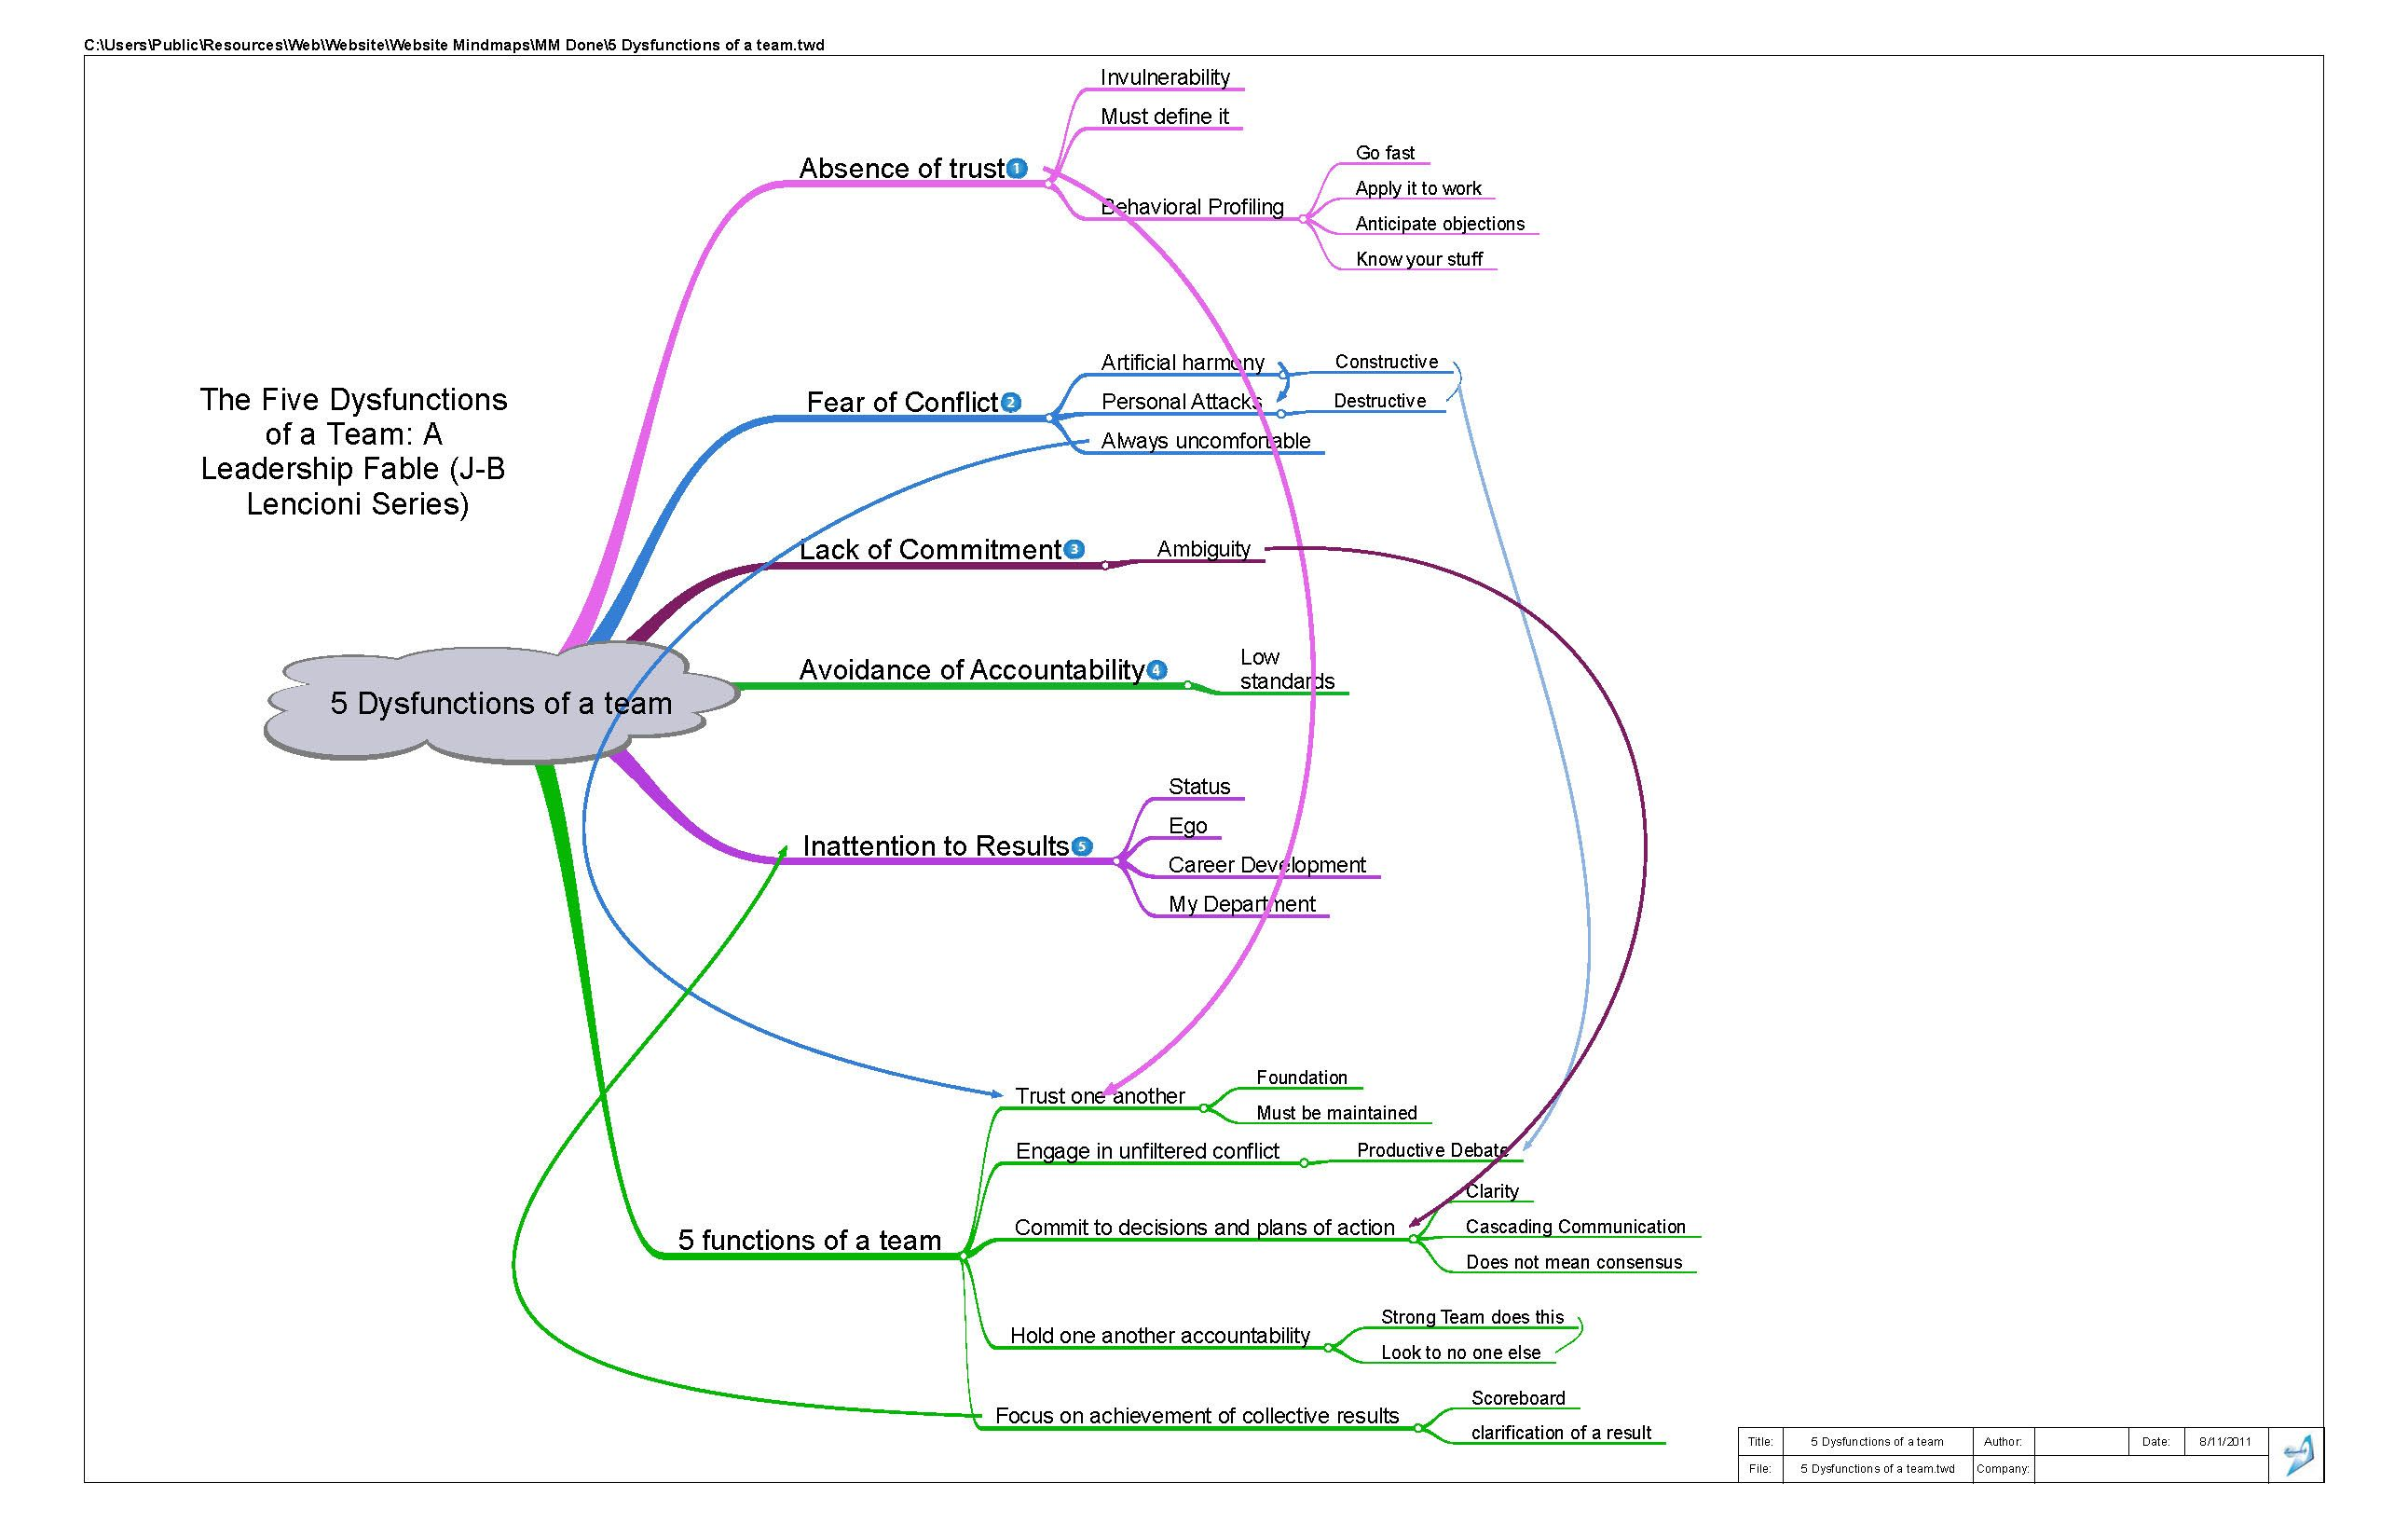 Mind Map of the Five Dysfunctions of a Team | Leadership